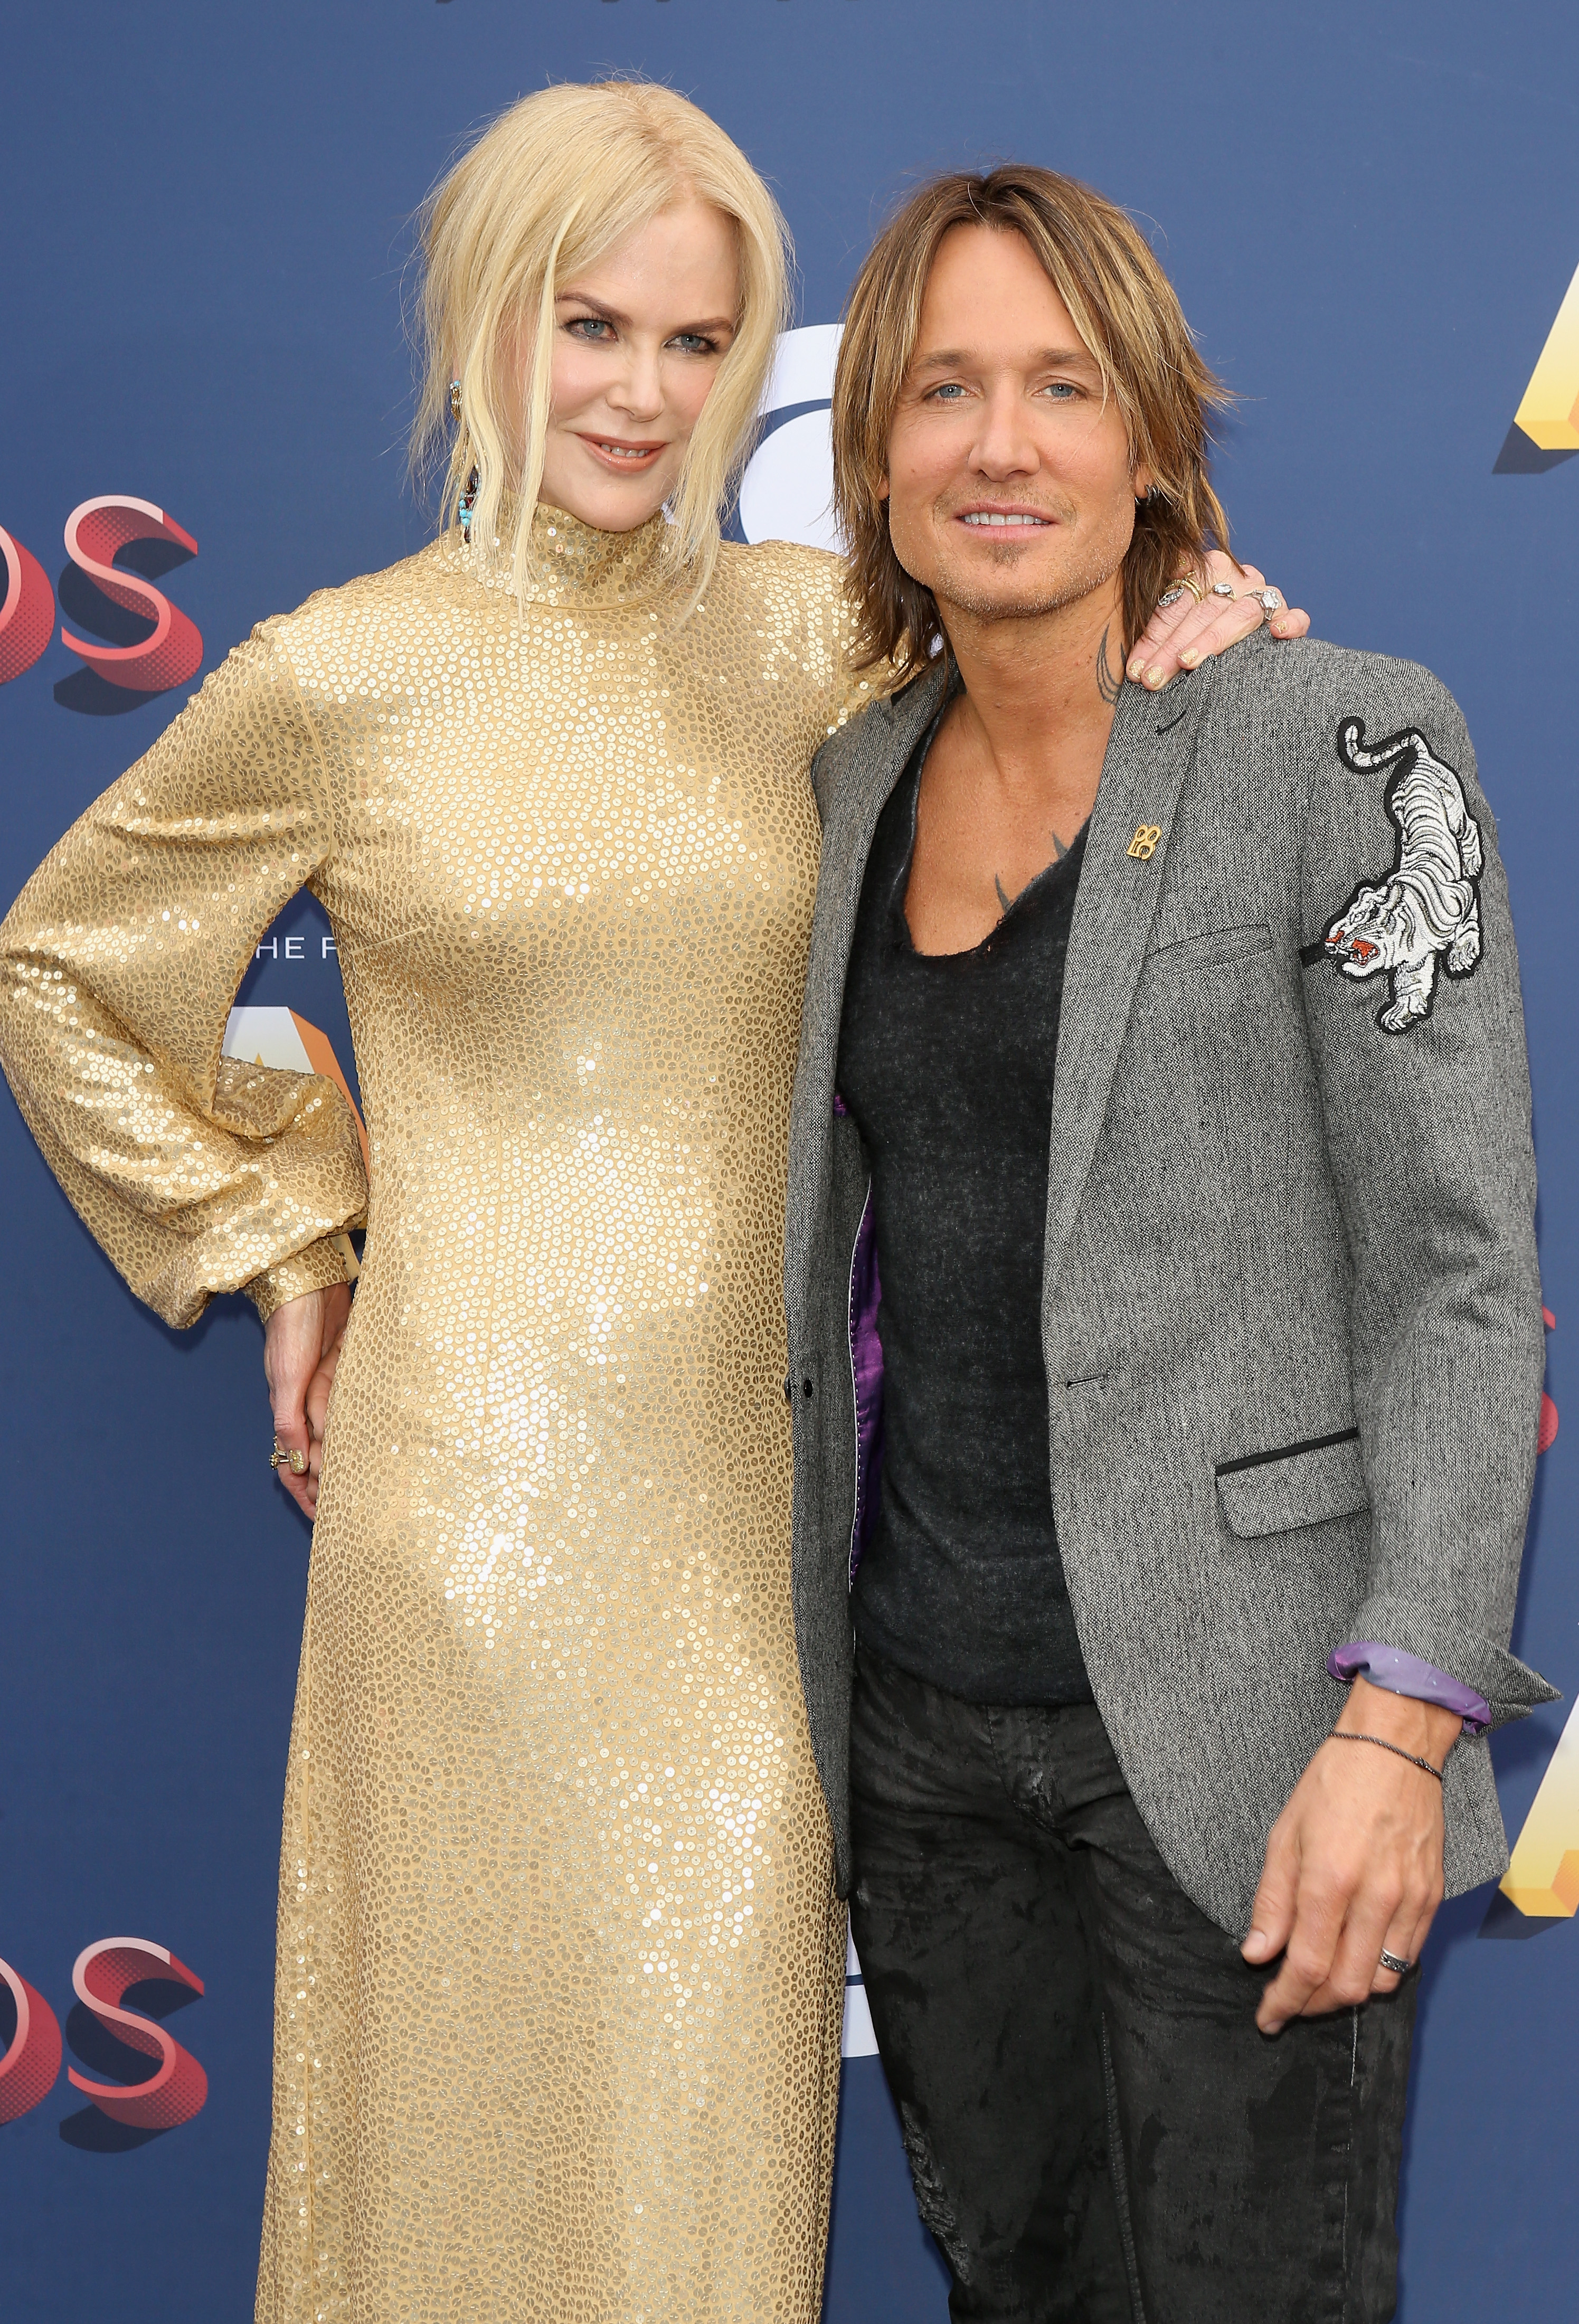 <p>The stars have walked the red carpet for country music's night of nights, the 53rd Country Music Awards, and they didn't disappoint.</p> <p>The A-list of the country music scene pulled out all the stops for the Las Vegas awards night, none more so that Nicole Kidman. </p> <p>The<em> Big Little Lies</em> actress stunned in a gold, backless Michael Kors gown, while singer Gwen Stefani turned heads as Blake Shelton's plus one in a red mini dress paired with thigh-high boots.</p> <p>Take a look at the most talked about looks of the night…</p>